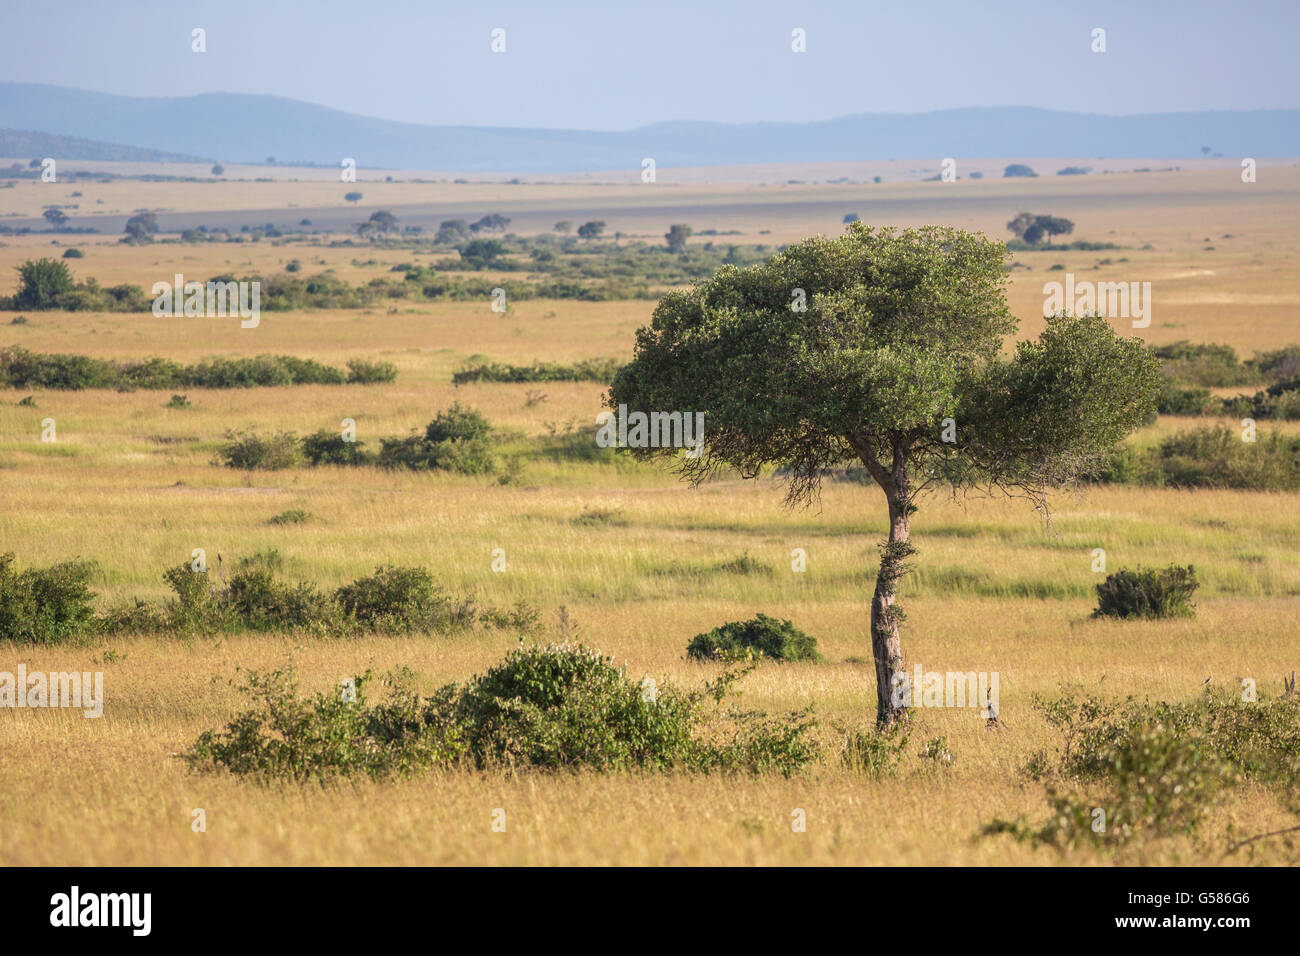 Landscape view over Masai Mara with an Acacia tree in the front, Kenya, Africa Stock Photo